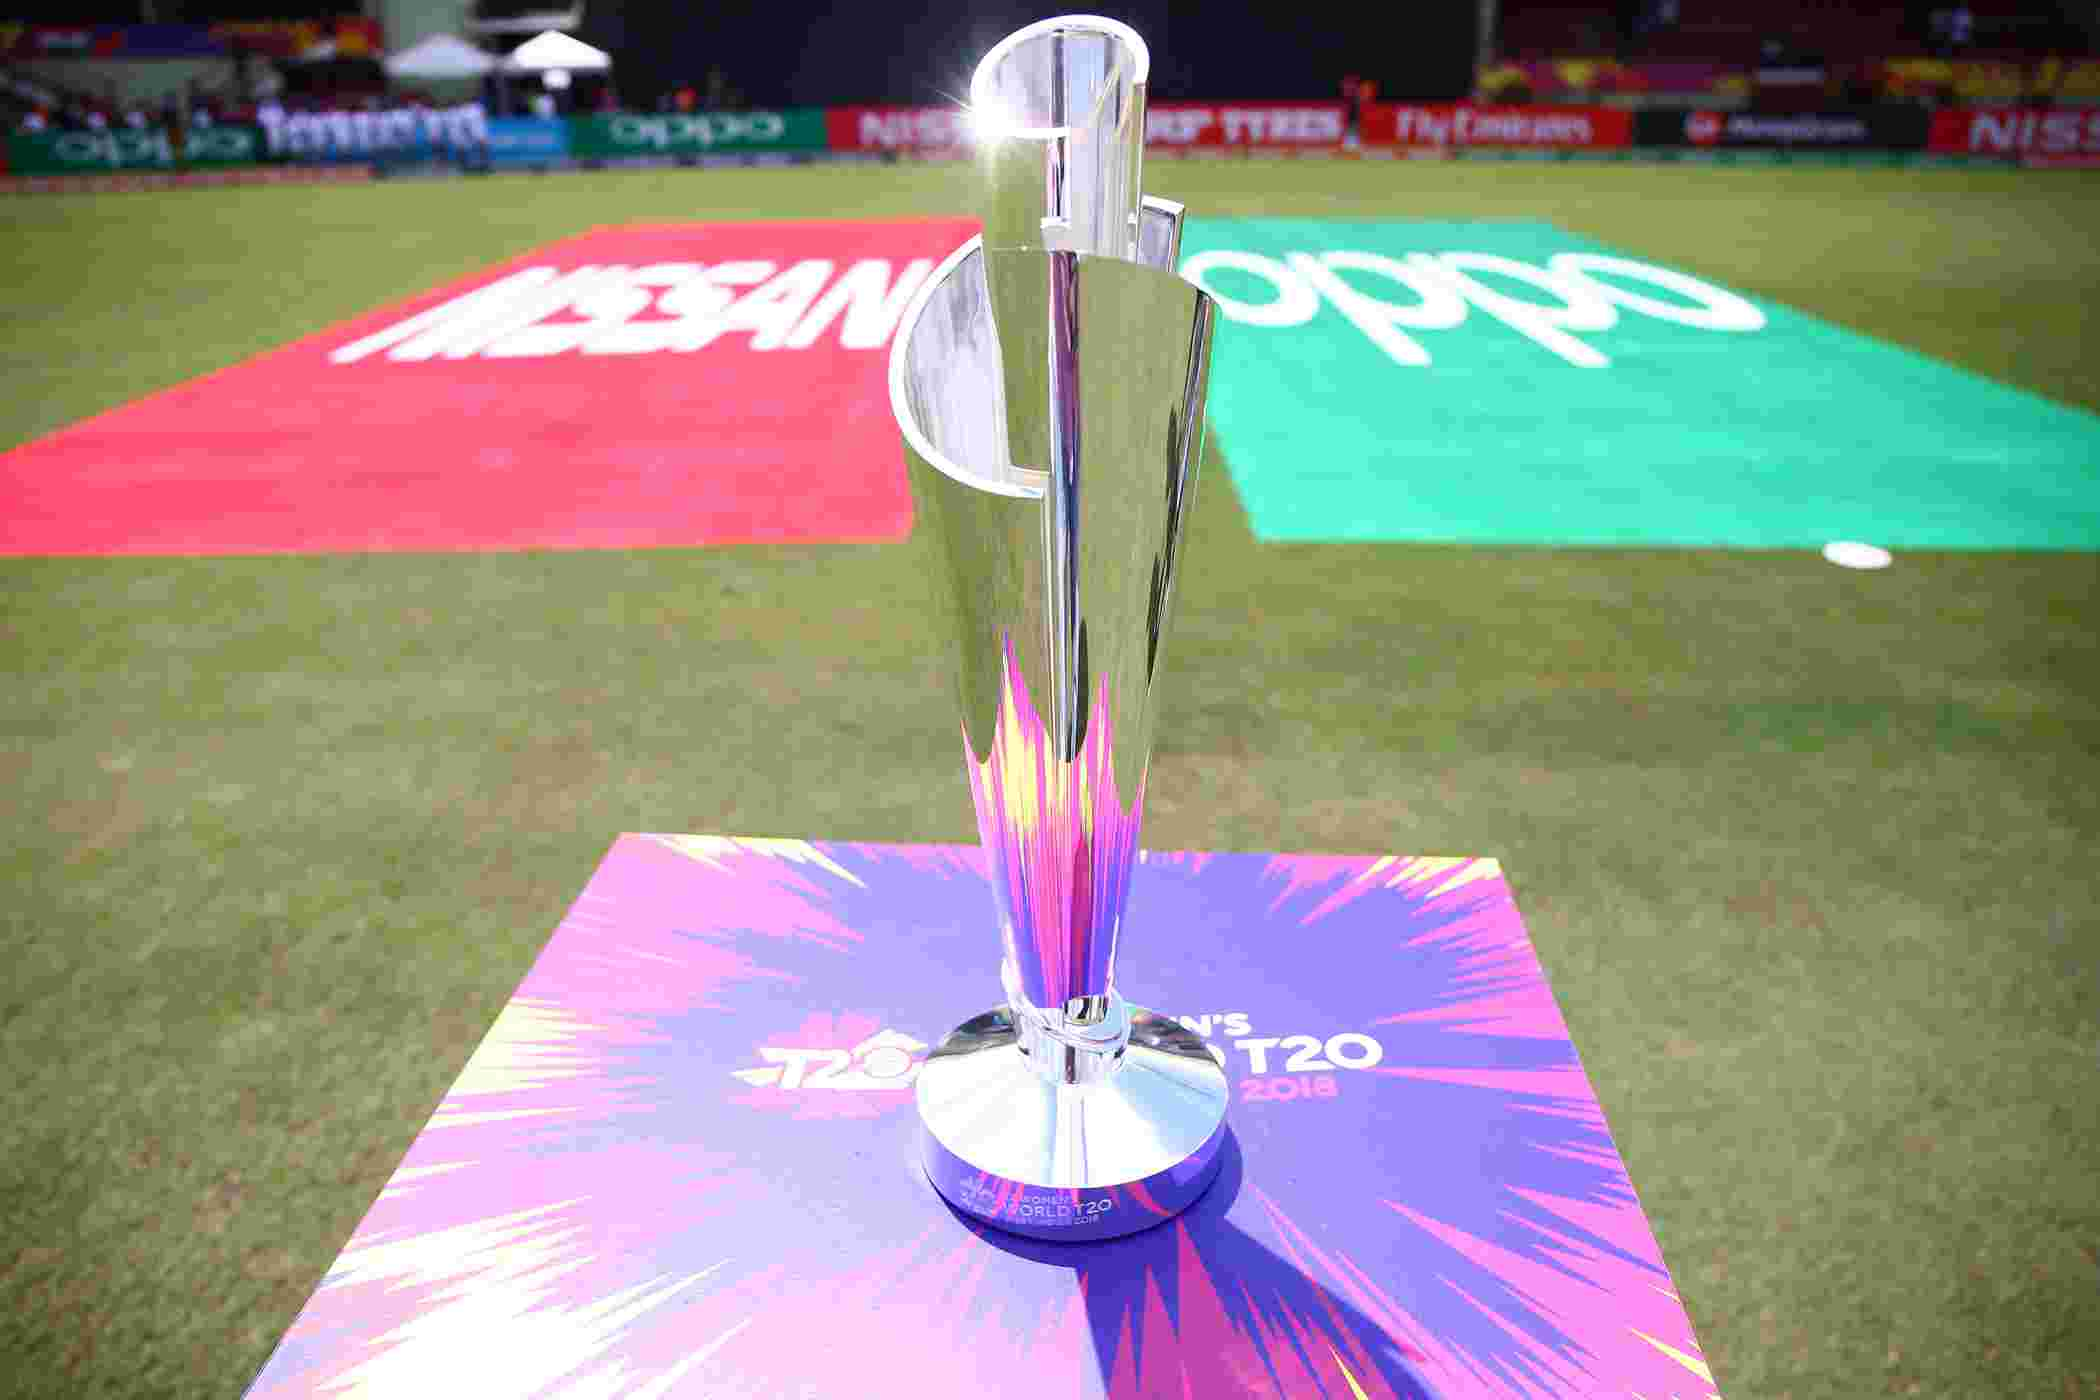 T20 World Cup 2021: Complete schedule for the warm up games